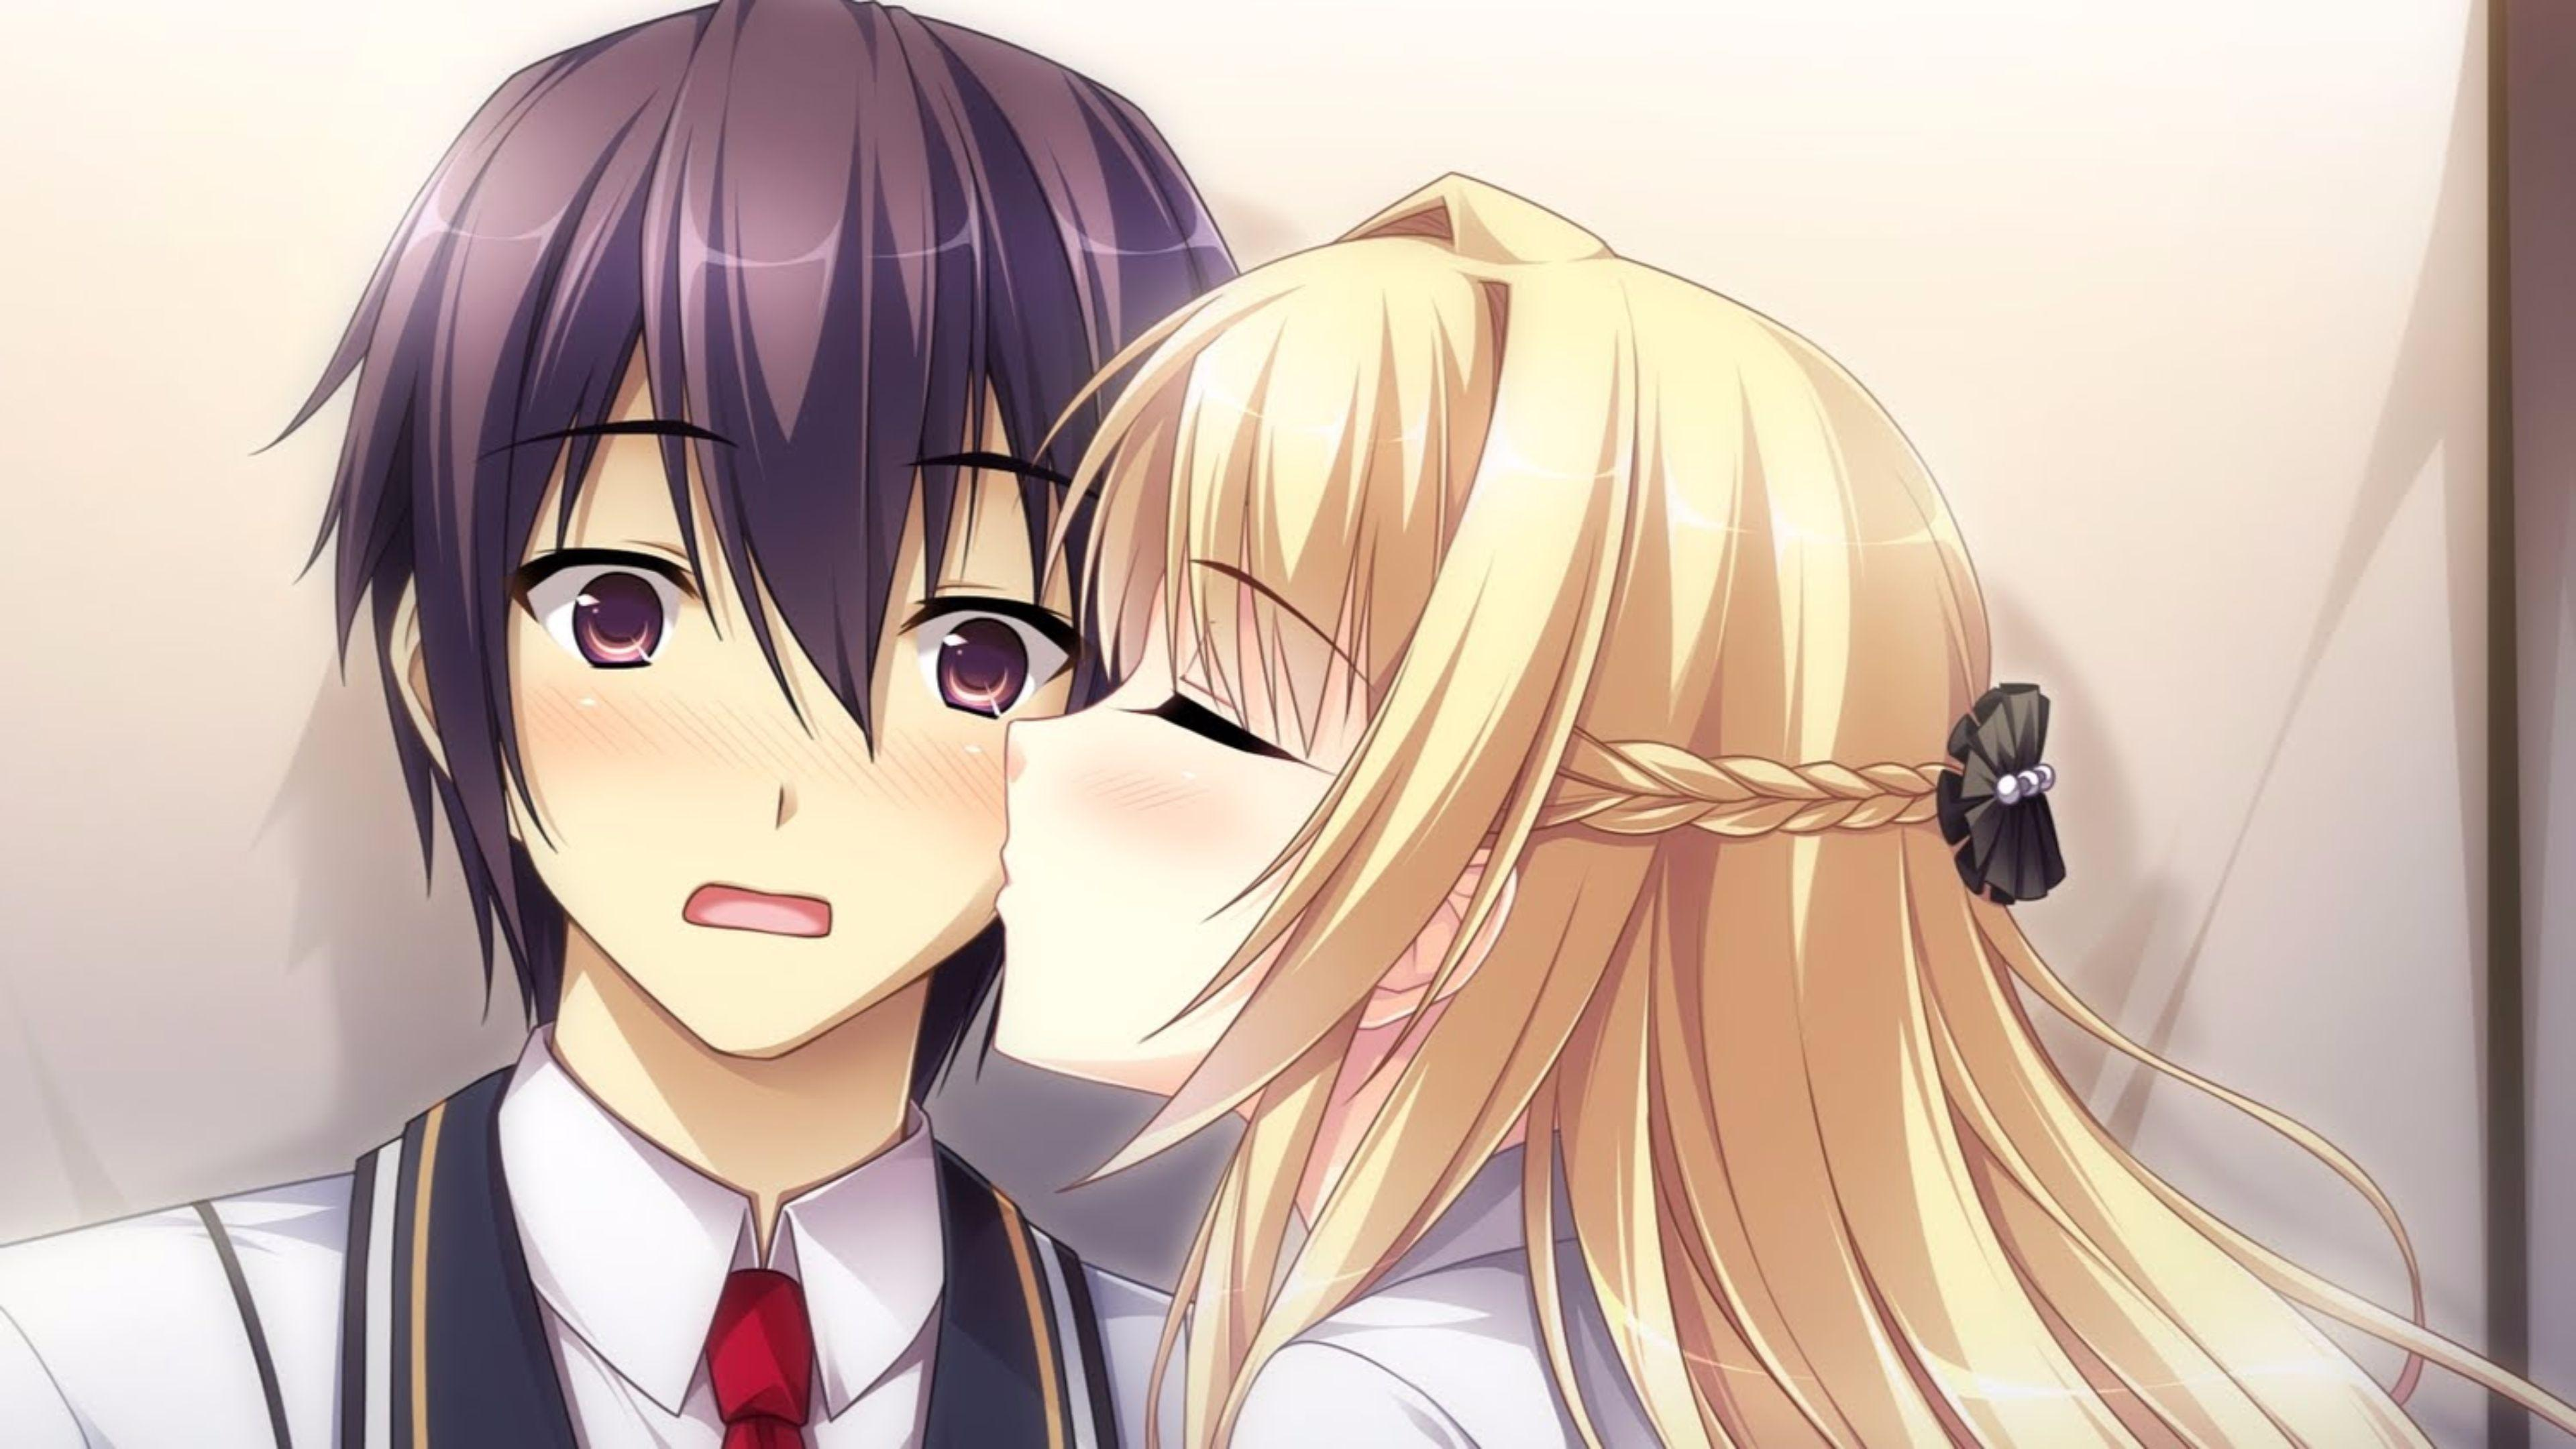 Kiss anime wallpapers wallpaper cave - Best anime picture hd ...